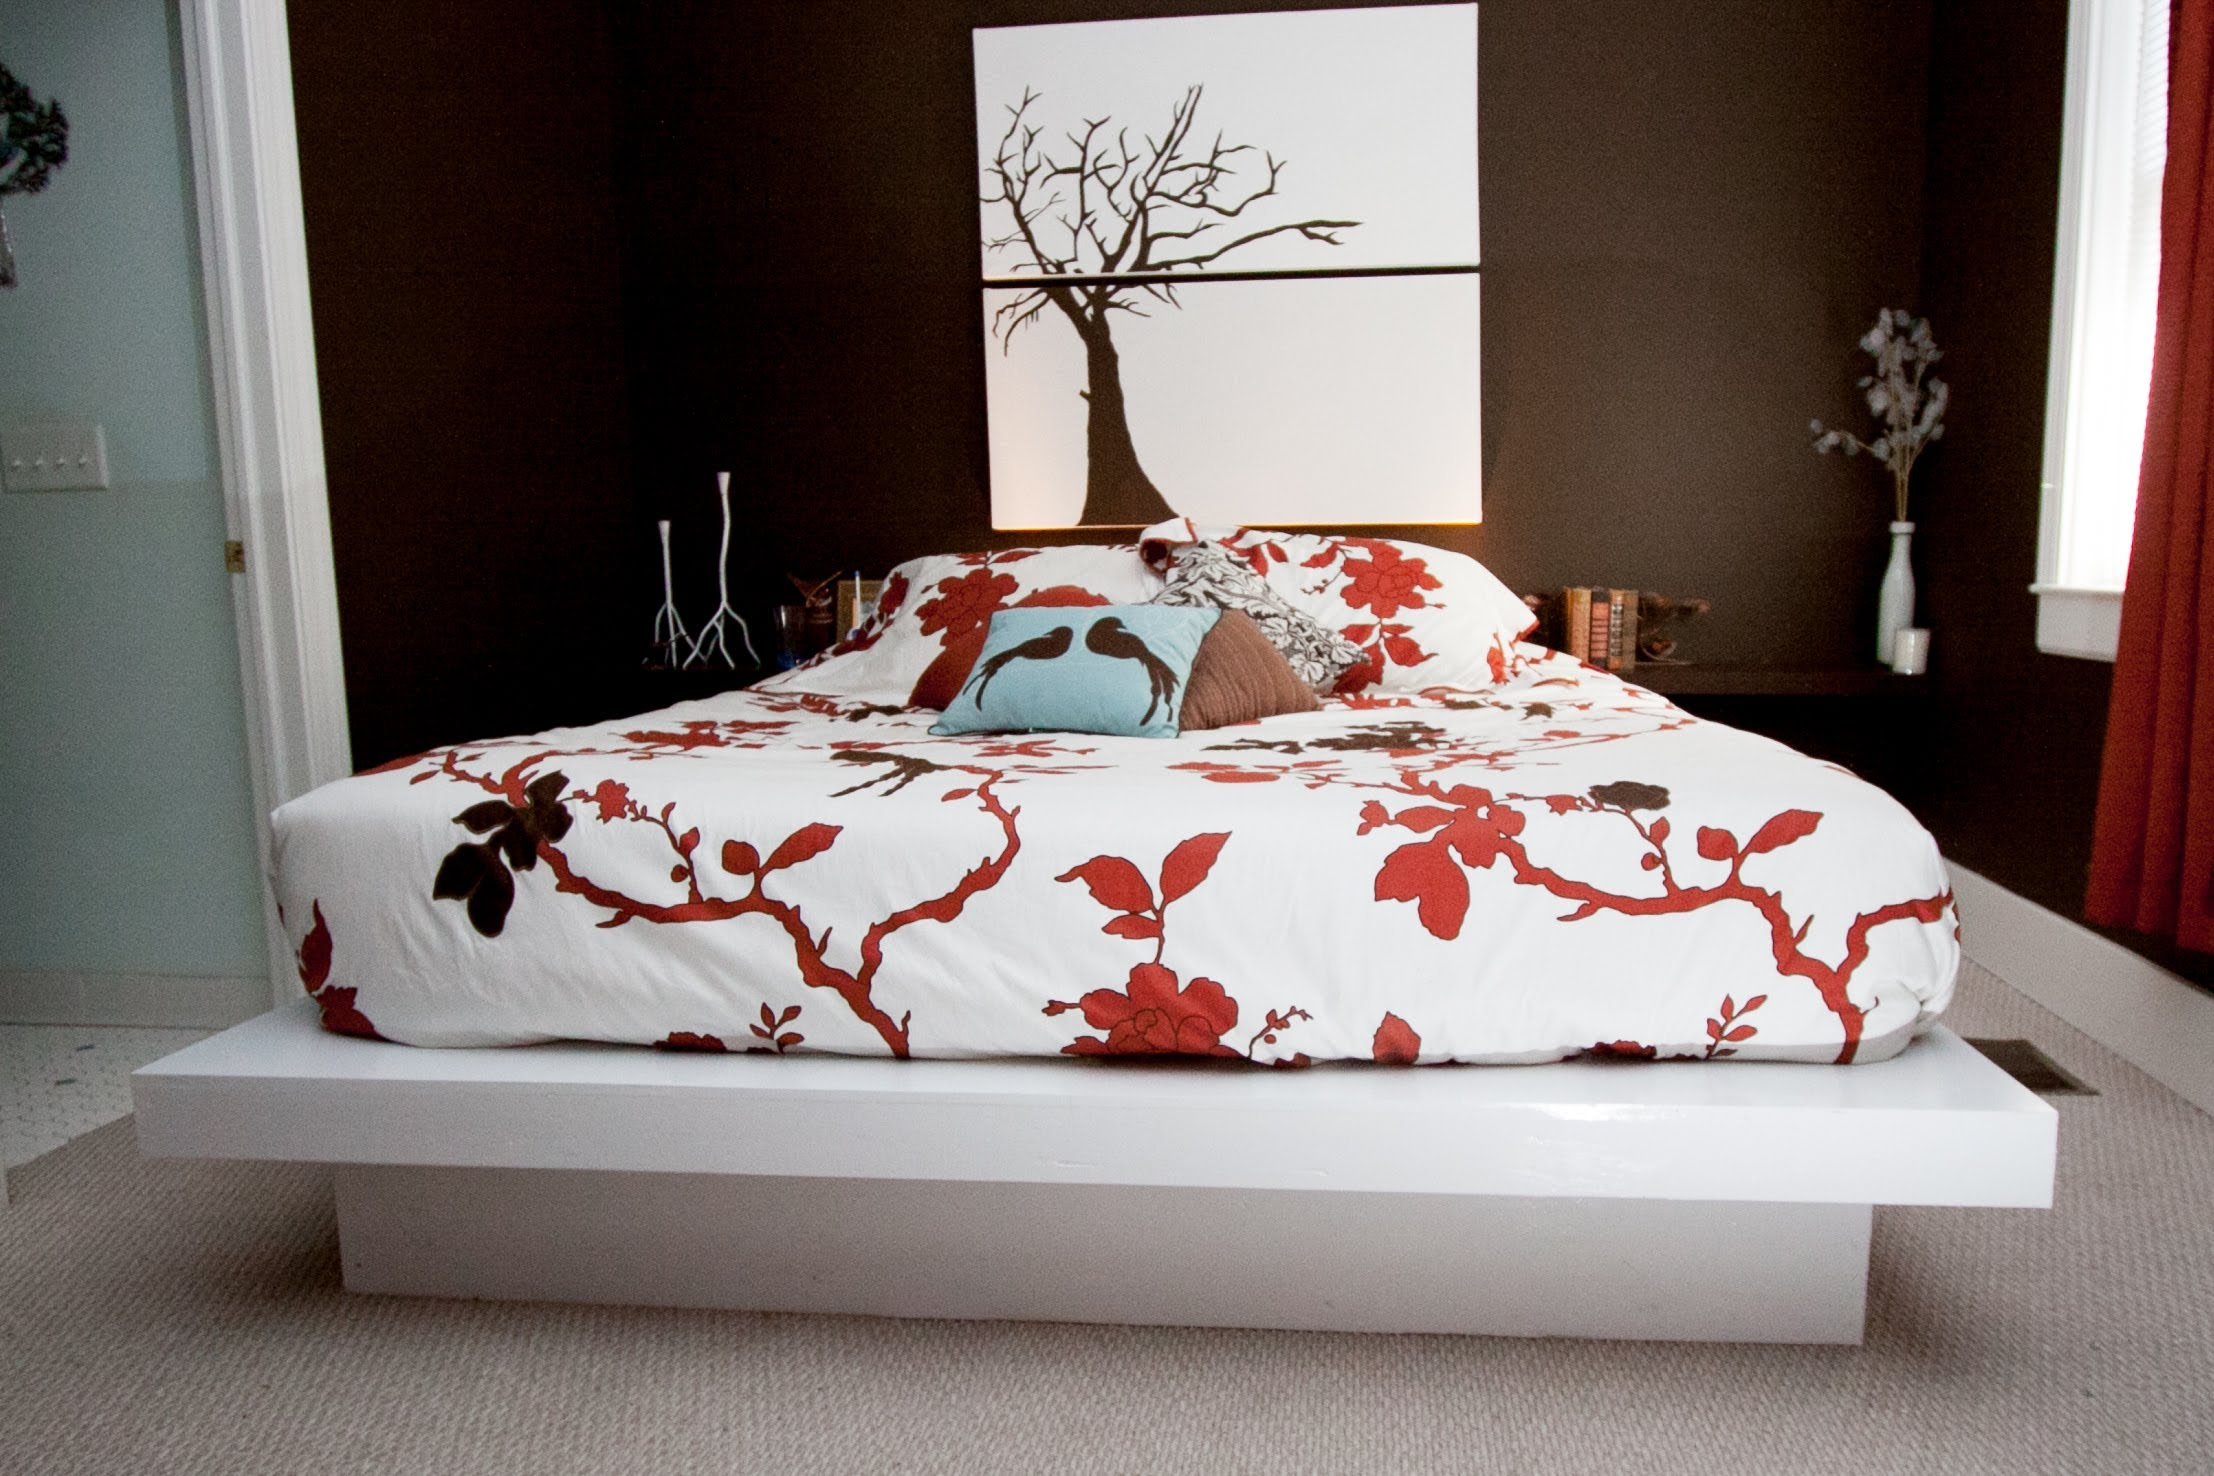 Diy Projects Video Diy Platform Bed Do It Yourself